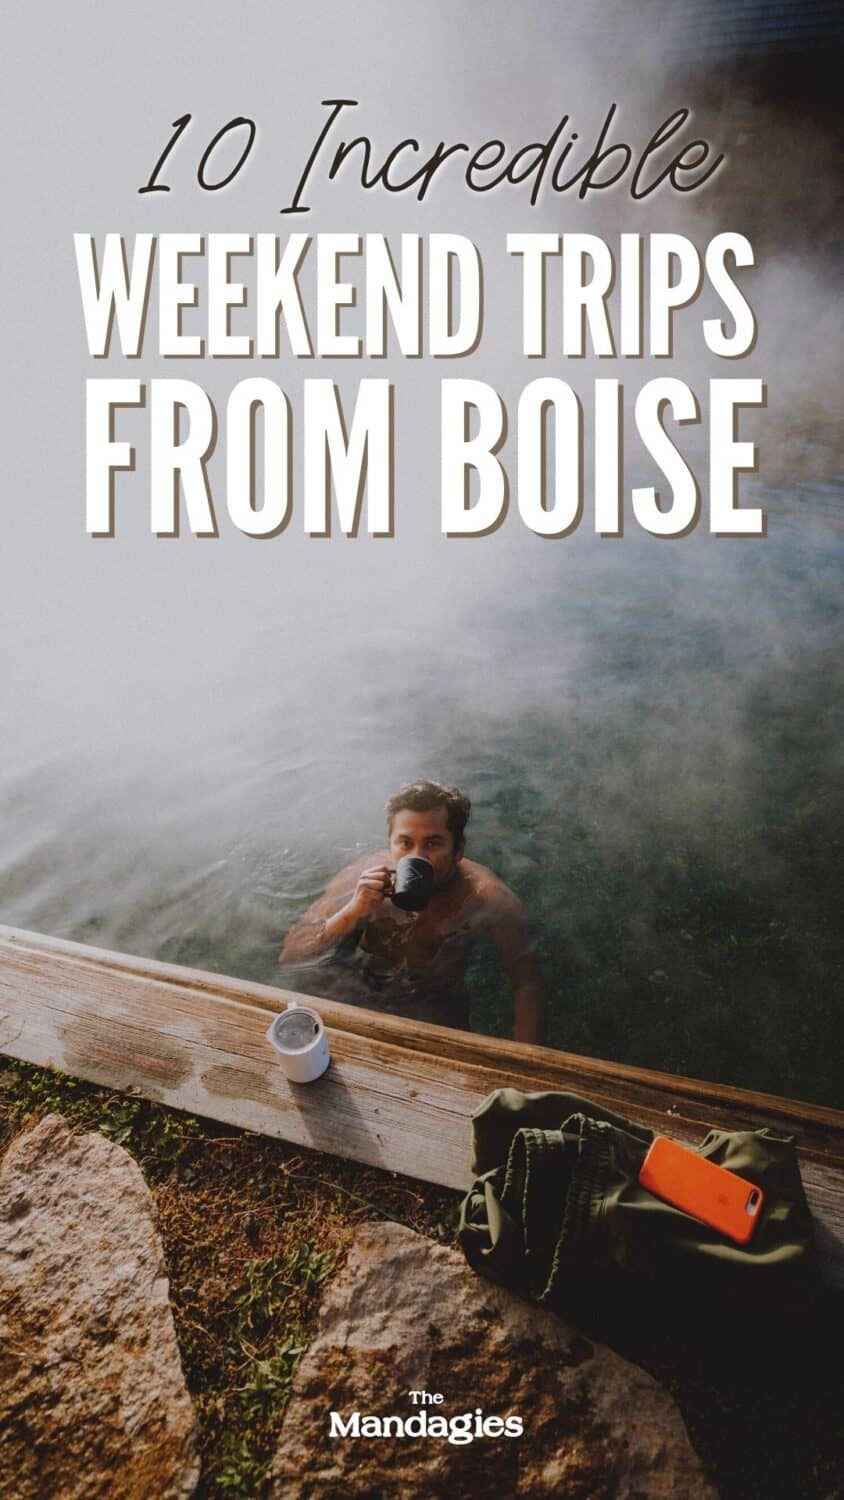 Ready to escape the city for a few days? We're sharing the best weekend getaways from Boise, Idaho in this post. From Sun Valley, Stanley, McCall and more, you'll leave this post with so much Idaho vacation inspiration! #idaho #hotsprings #stanleyidaho #Roadtrip #sunvalley #mccall #boise #salmonriver #boatbox #mountains #travel #USAtravel #usa #photography #sunset #twinfalls